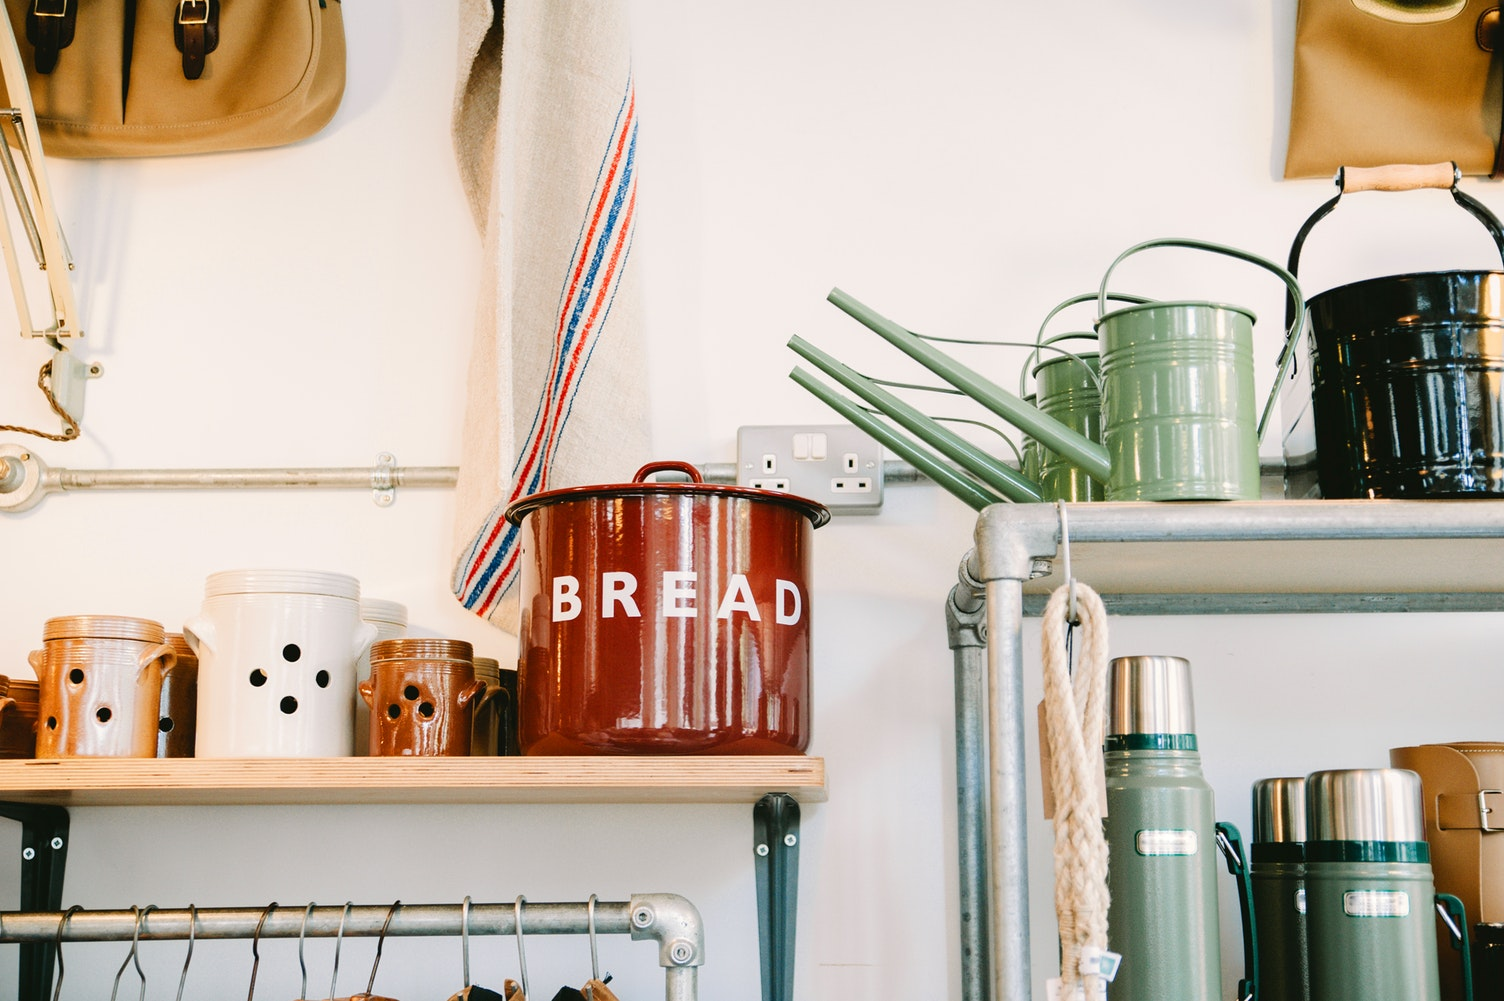 Small kitchen design thumb Simphome unsplash